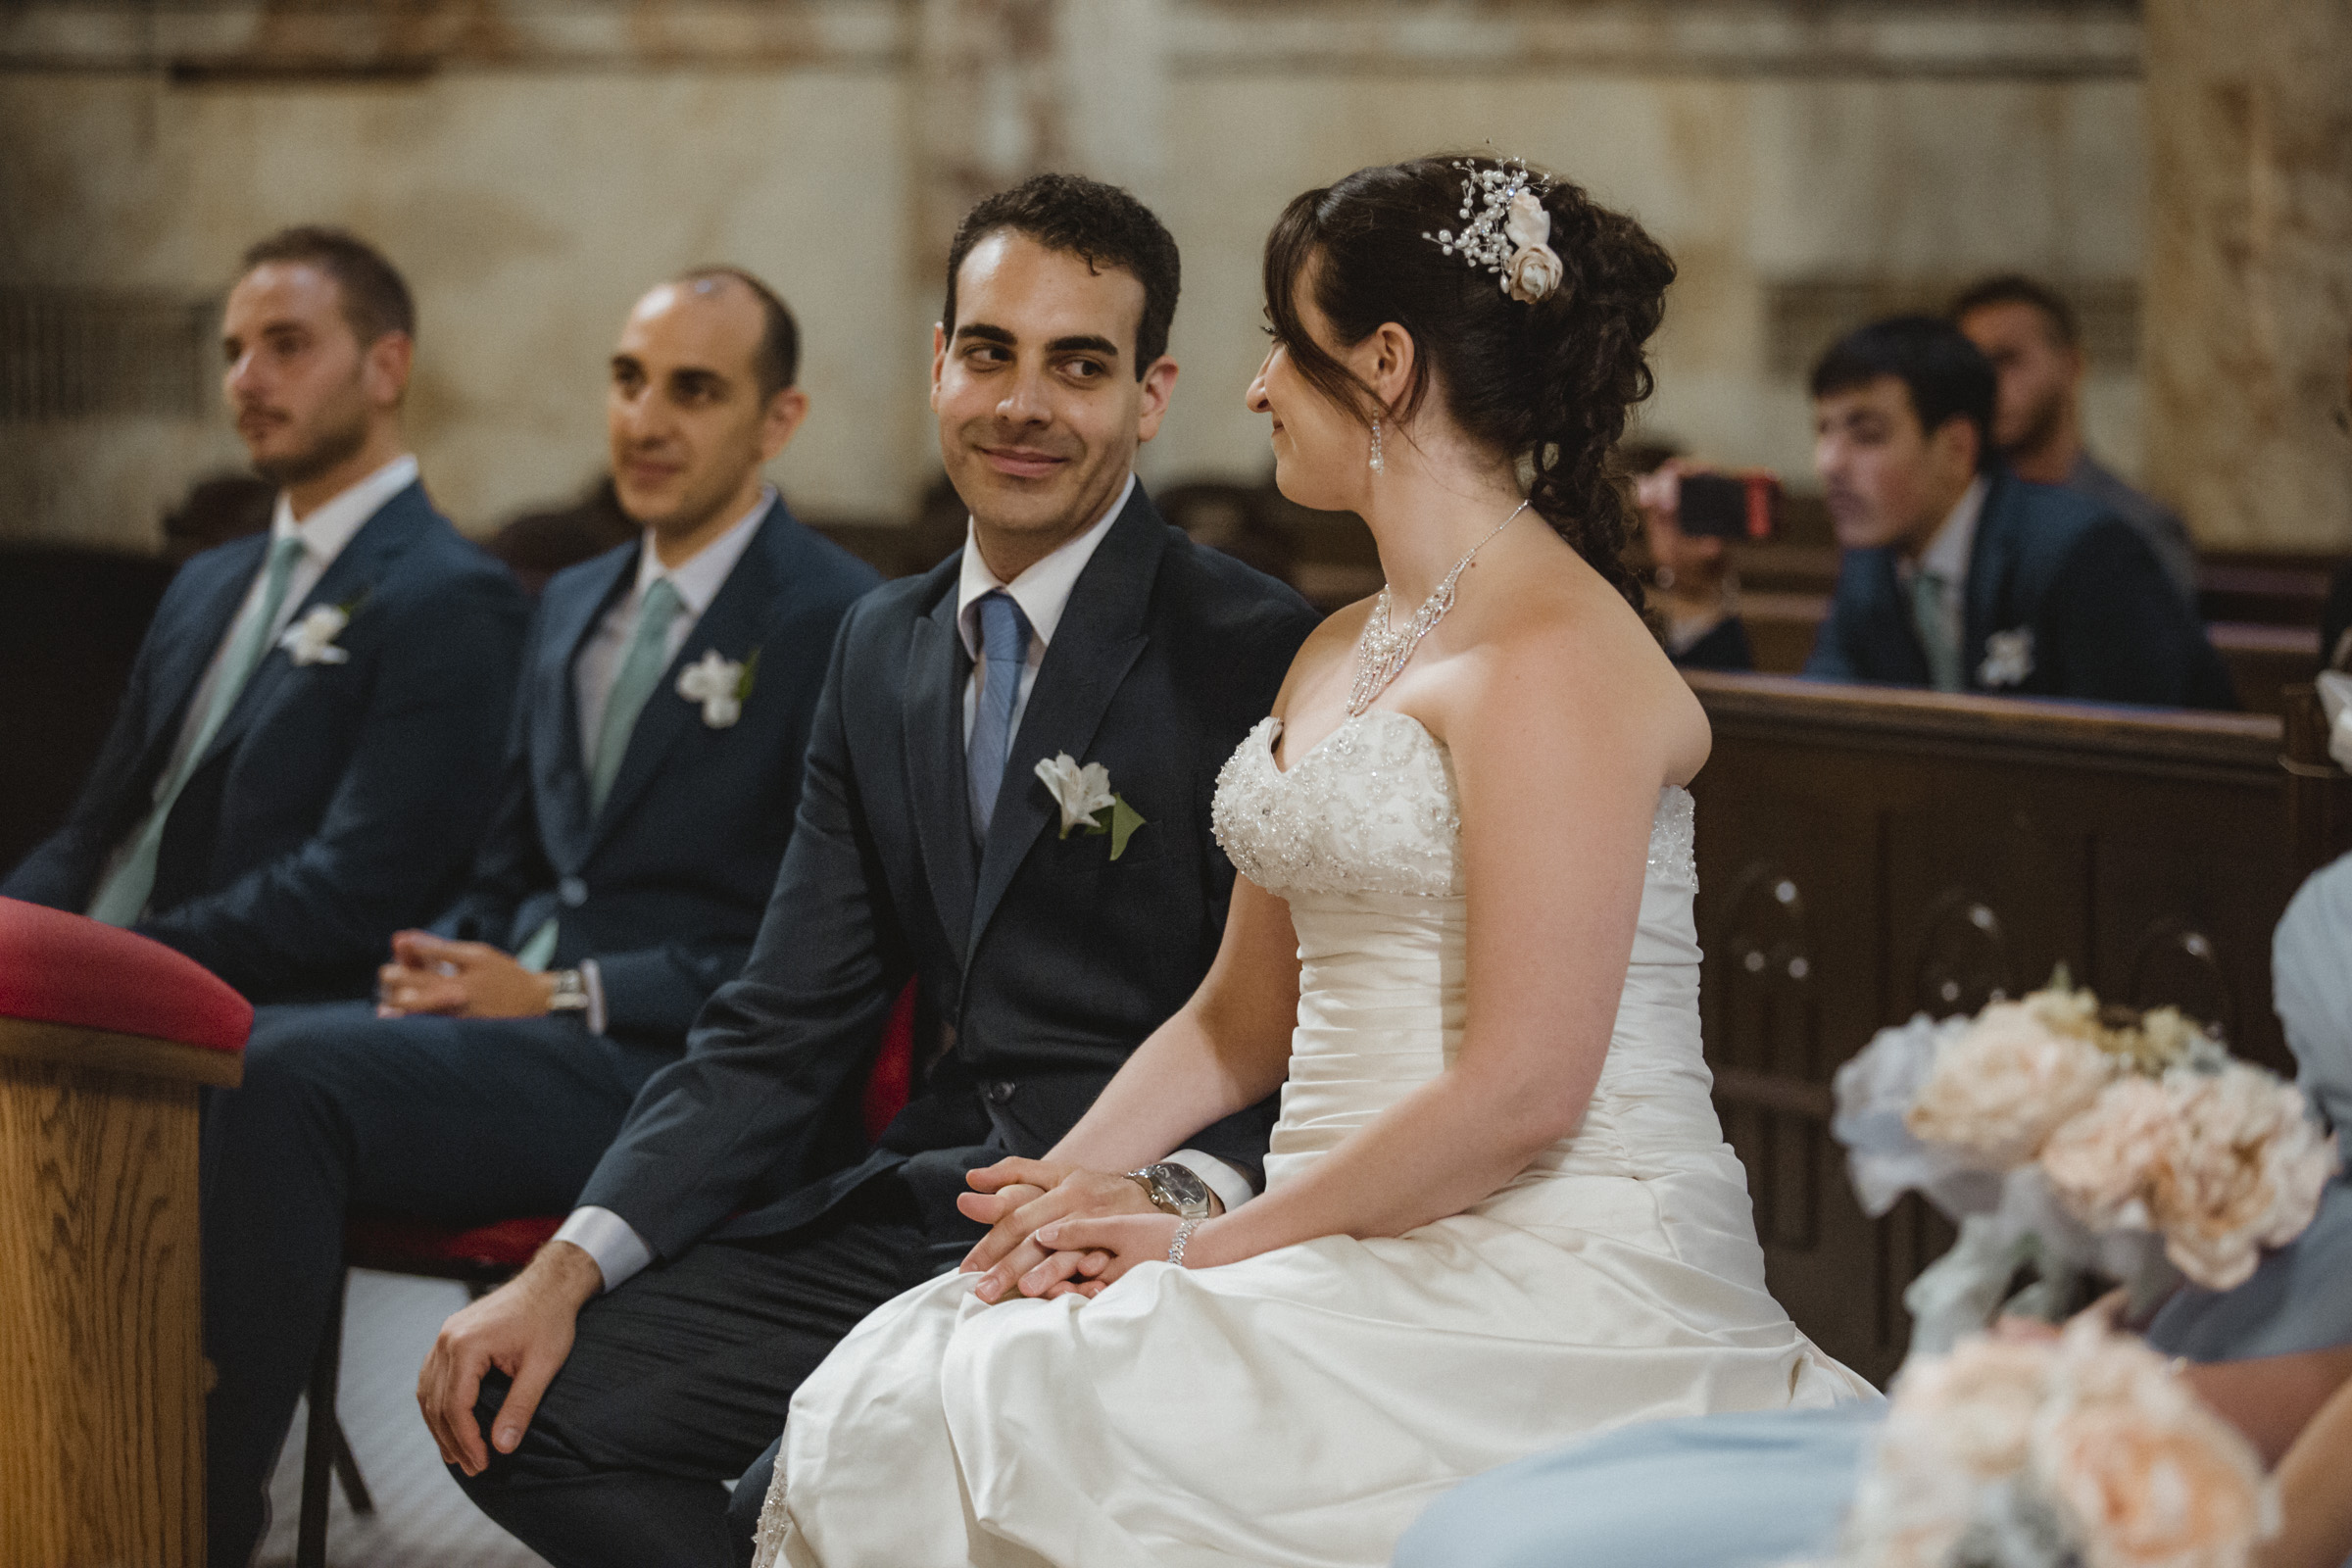 Bride and groom look at each other and smile during the ceremony | Our Lady of Pompeii wedding | Manhattan wedding | Bronx Wedding | Cathy & Antonello's wedding | Amy Sims Photography